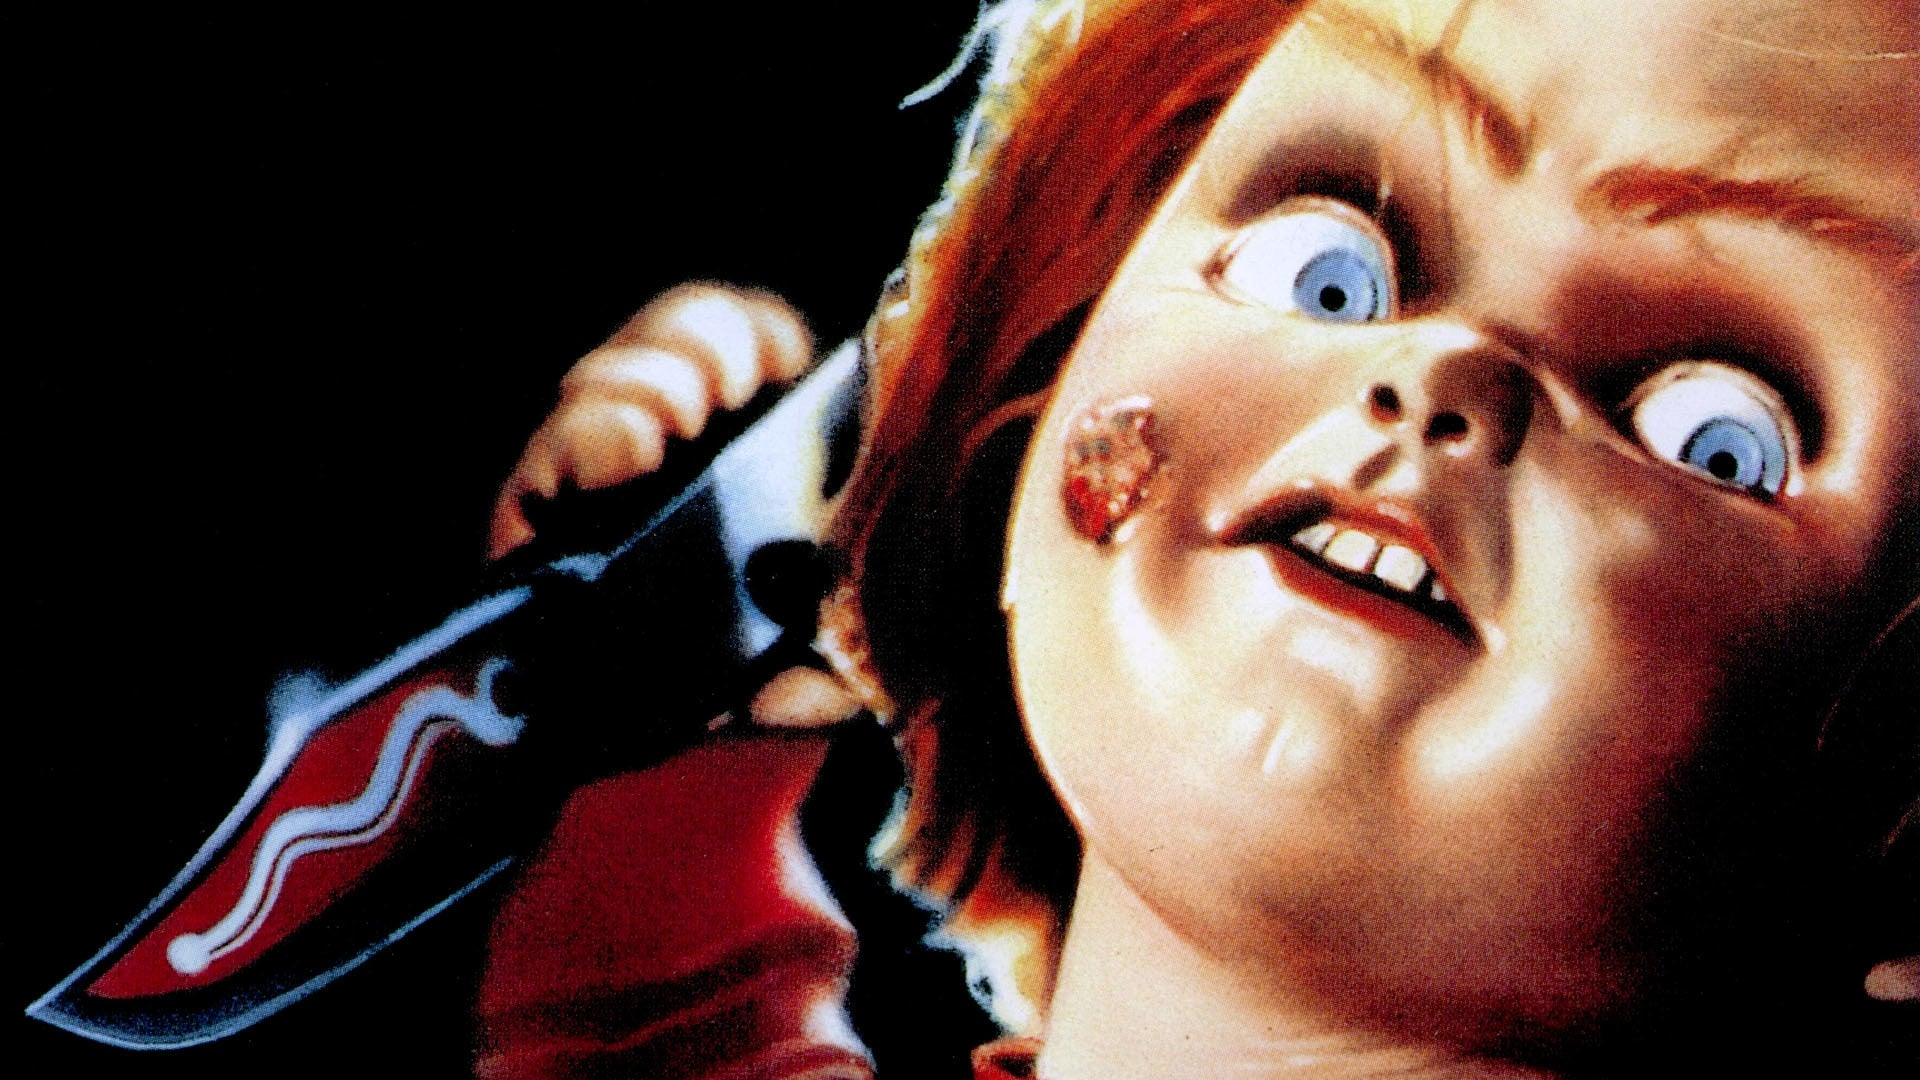 Watch the movie child's play